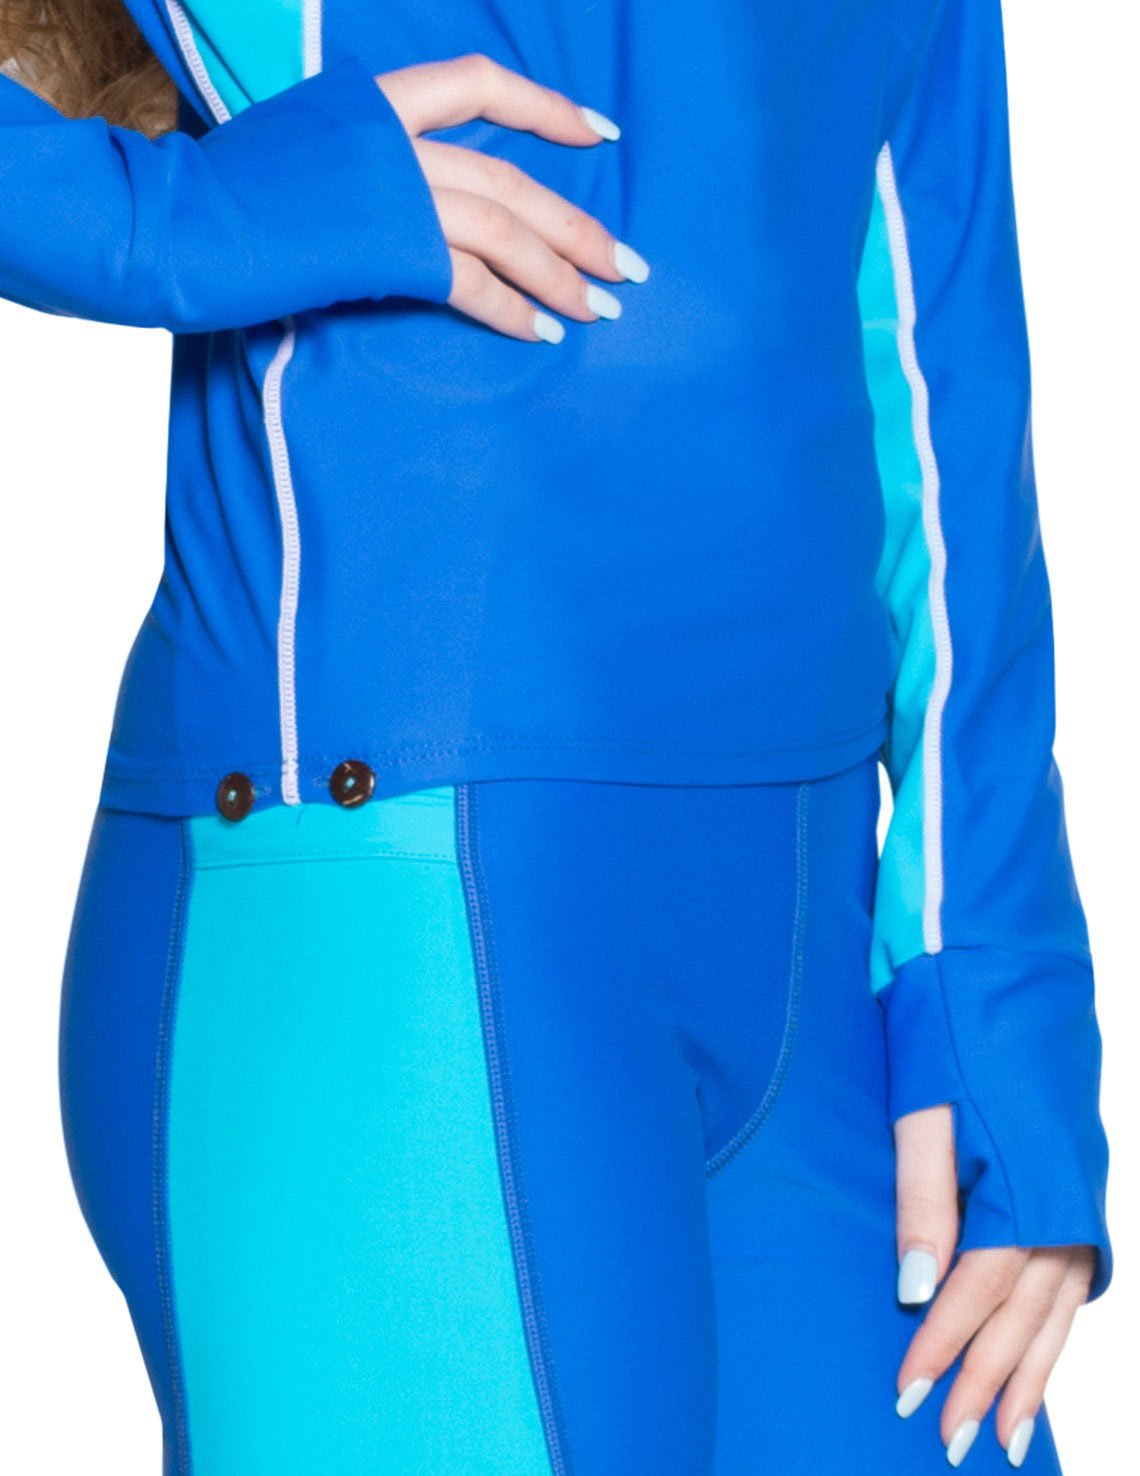 Tuga leggins for snorkeling in turquoise